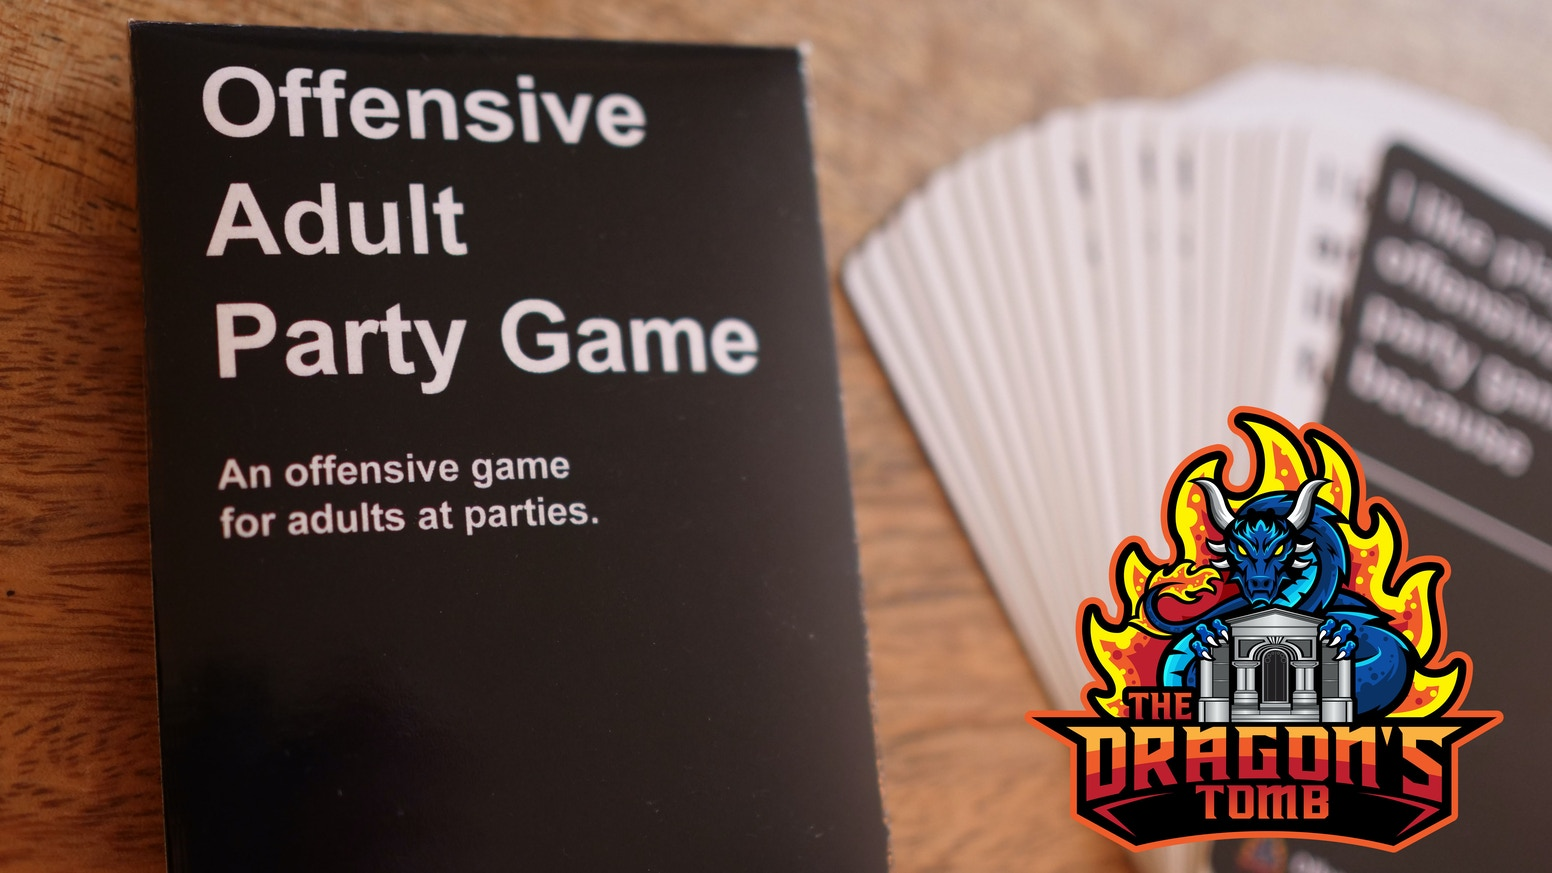 An offensive game for adults at parties.